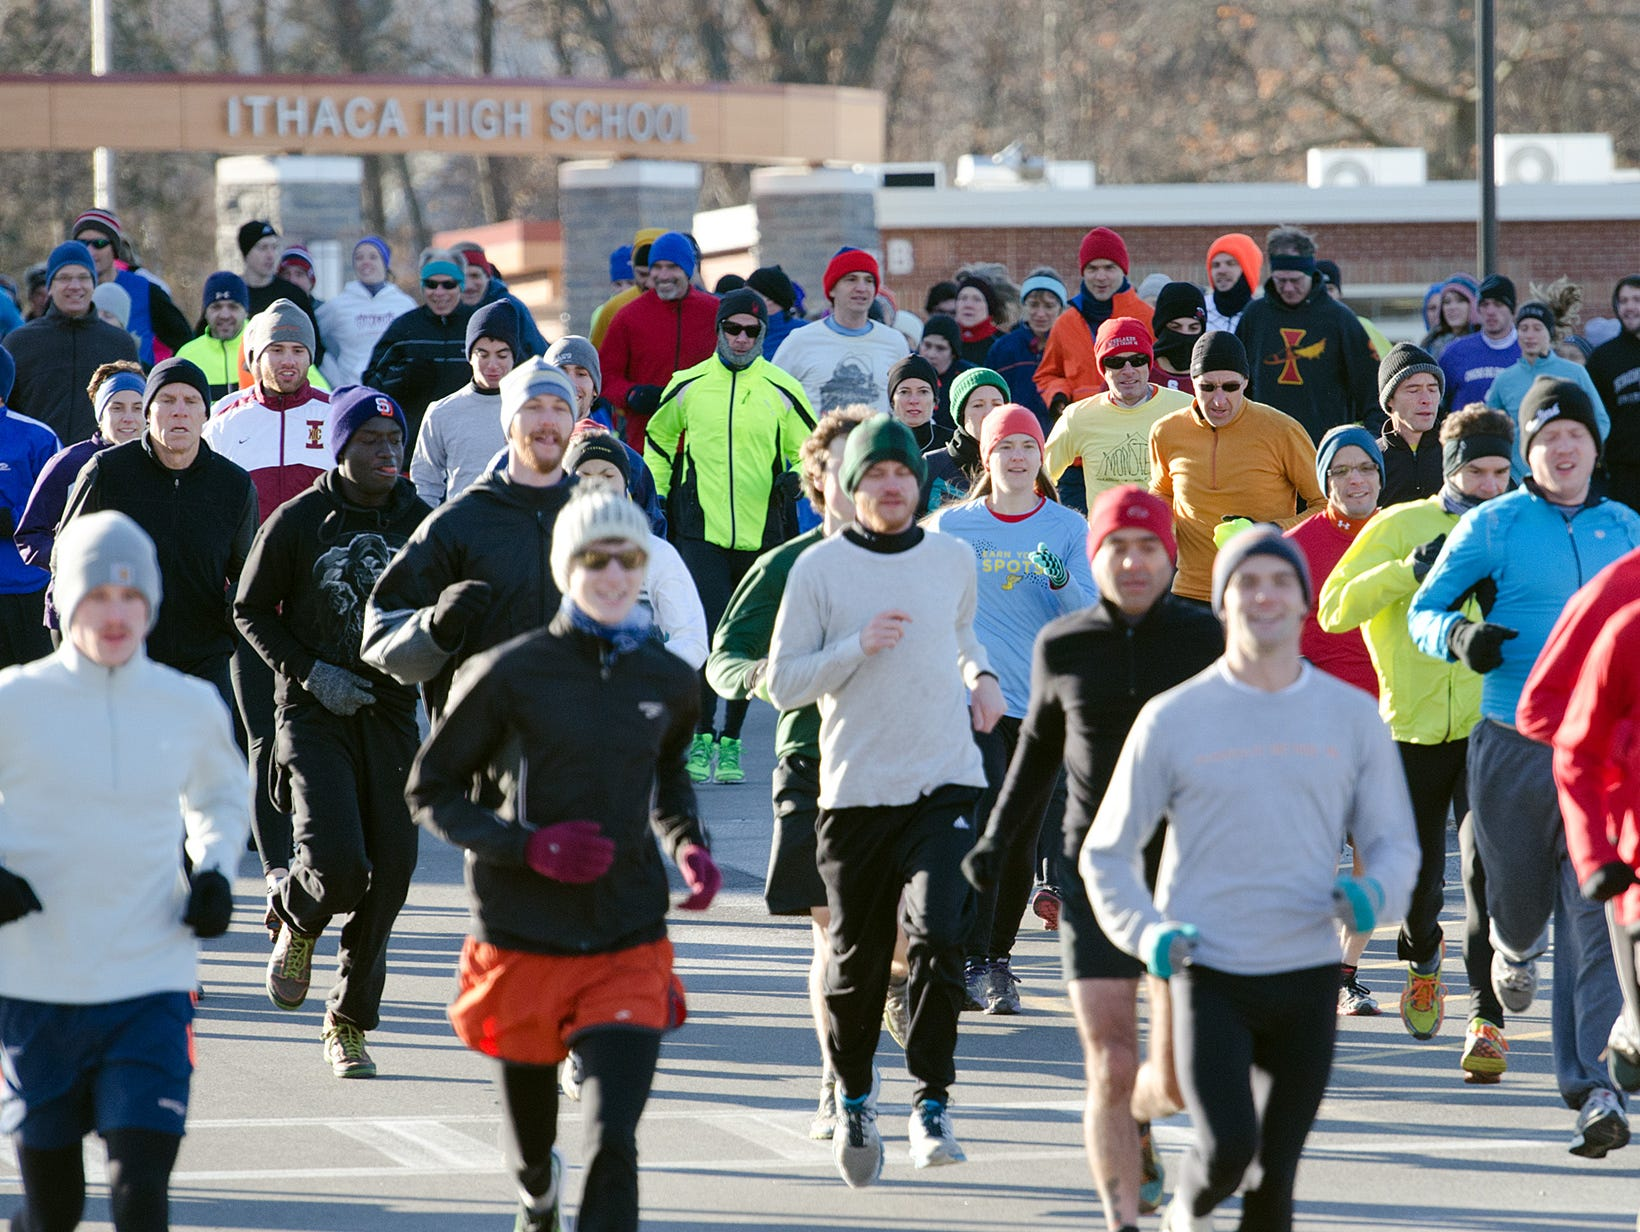 From 2013: Runners take off from Ithaca High School at the start of the 41st annual Thanksgiving Day Turkey Trot.